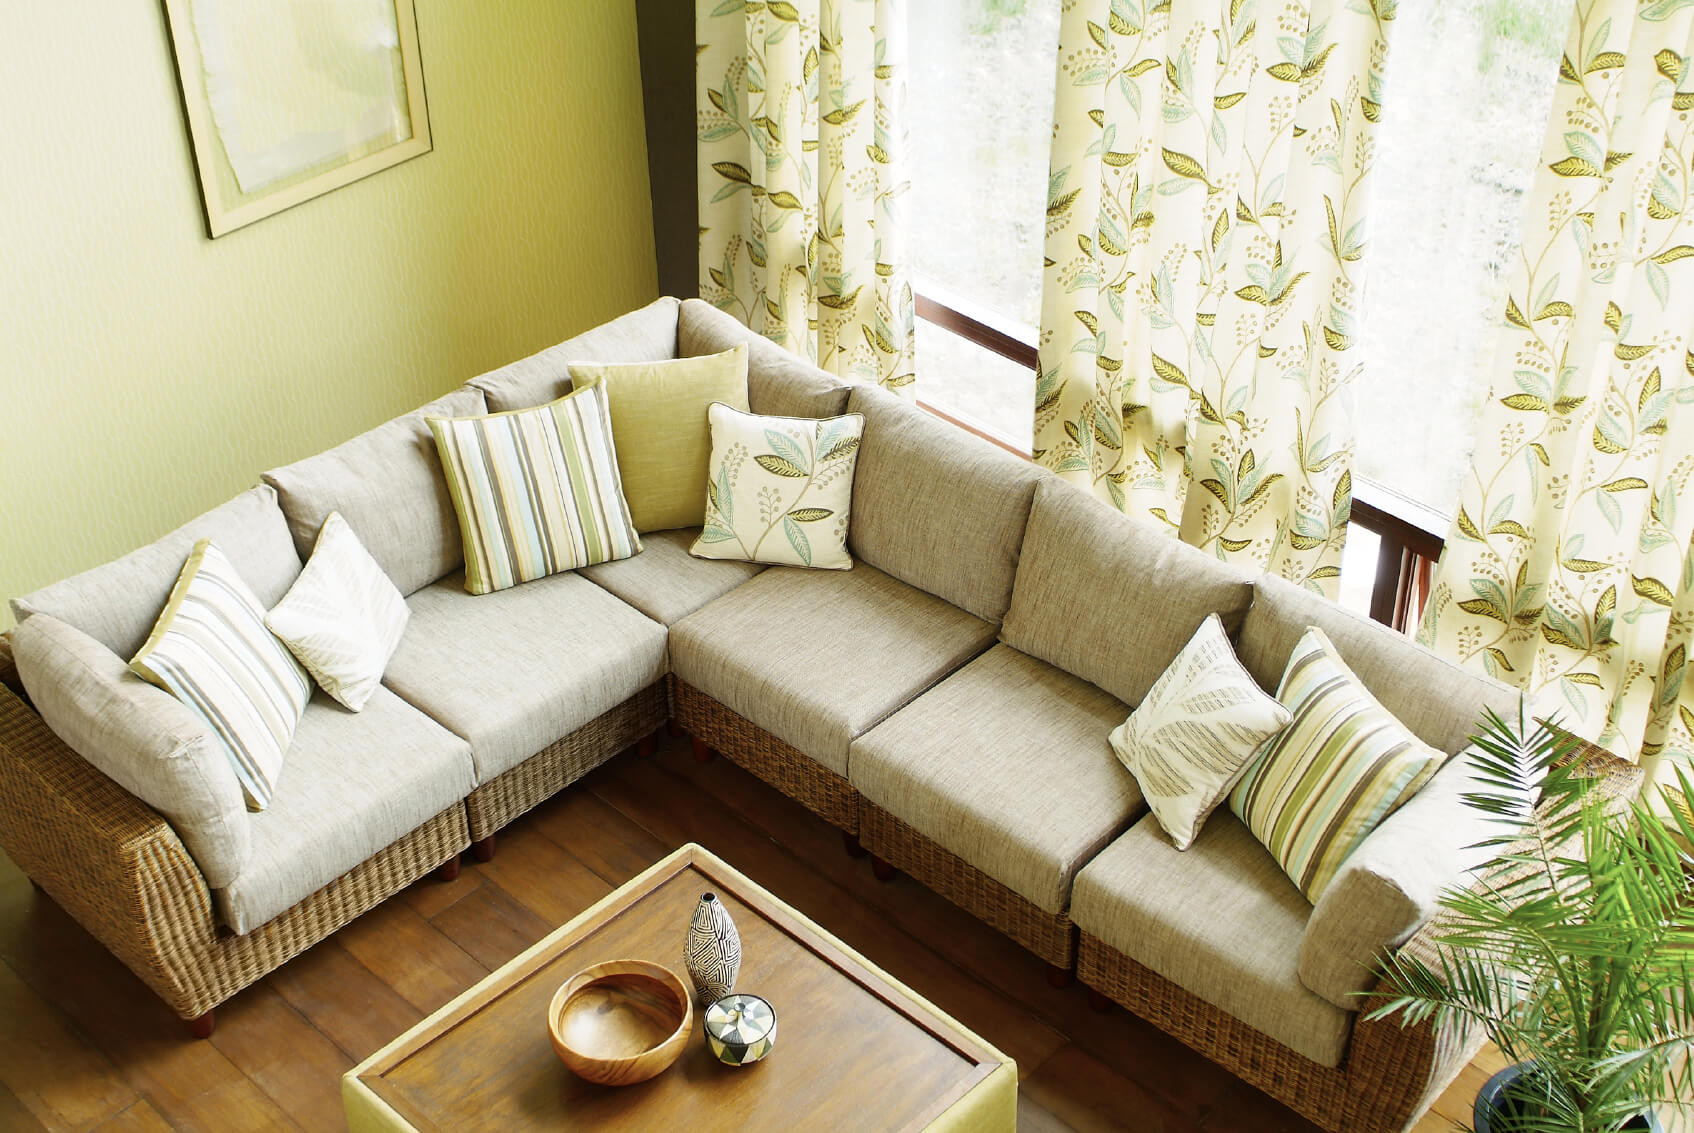 Best ideas about Furniture Ideas For Living Room . Save or Pin 22 Marvelous Living Room Furniture Ideas Definitive Guide Now.